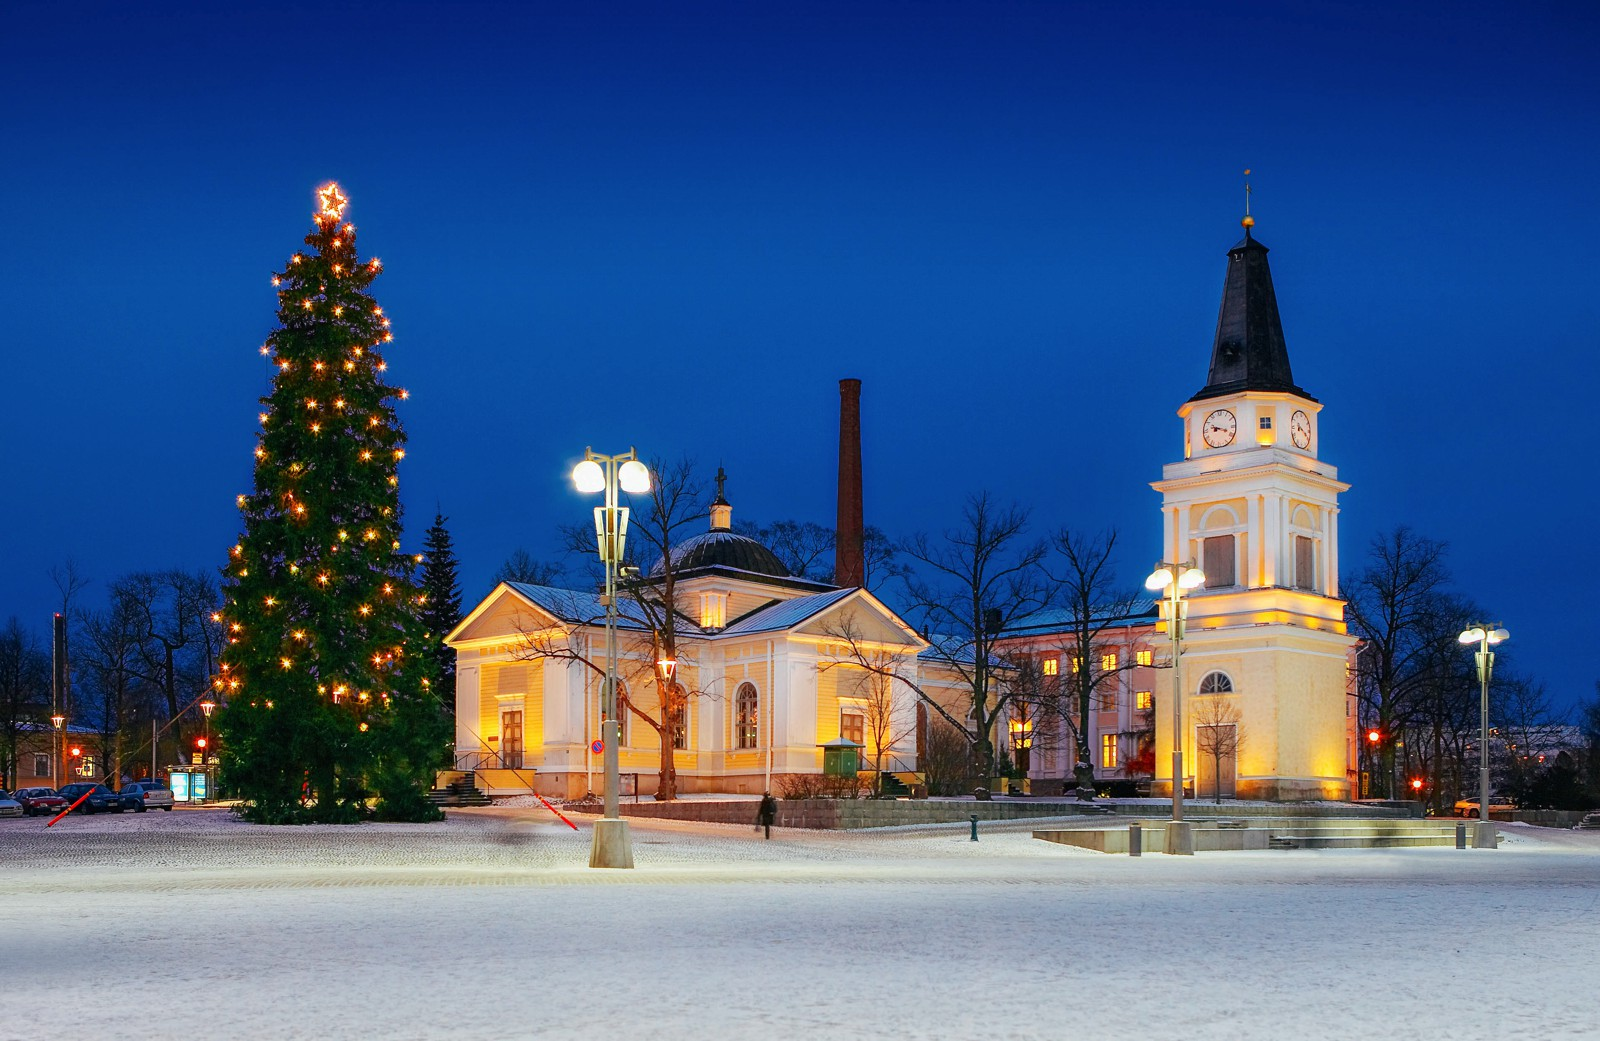 11 Amazing Cities and Towns You Have To Visit in Finland (5)